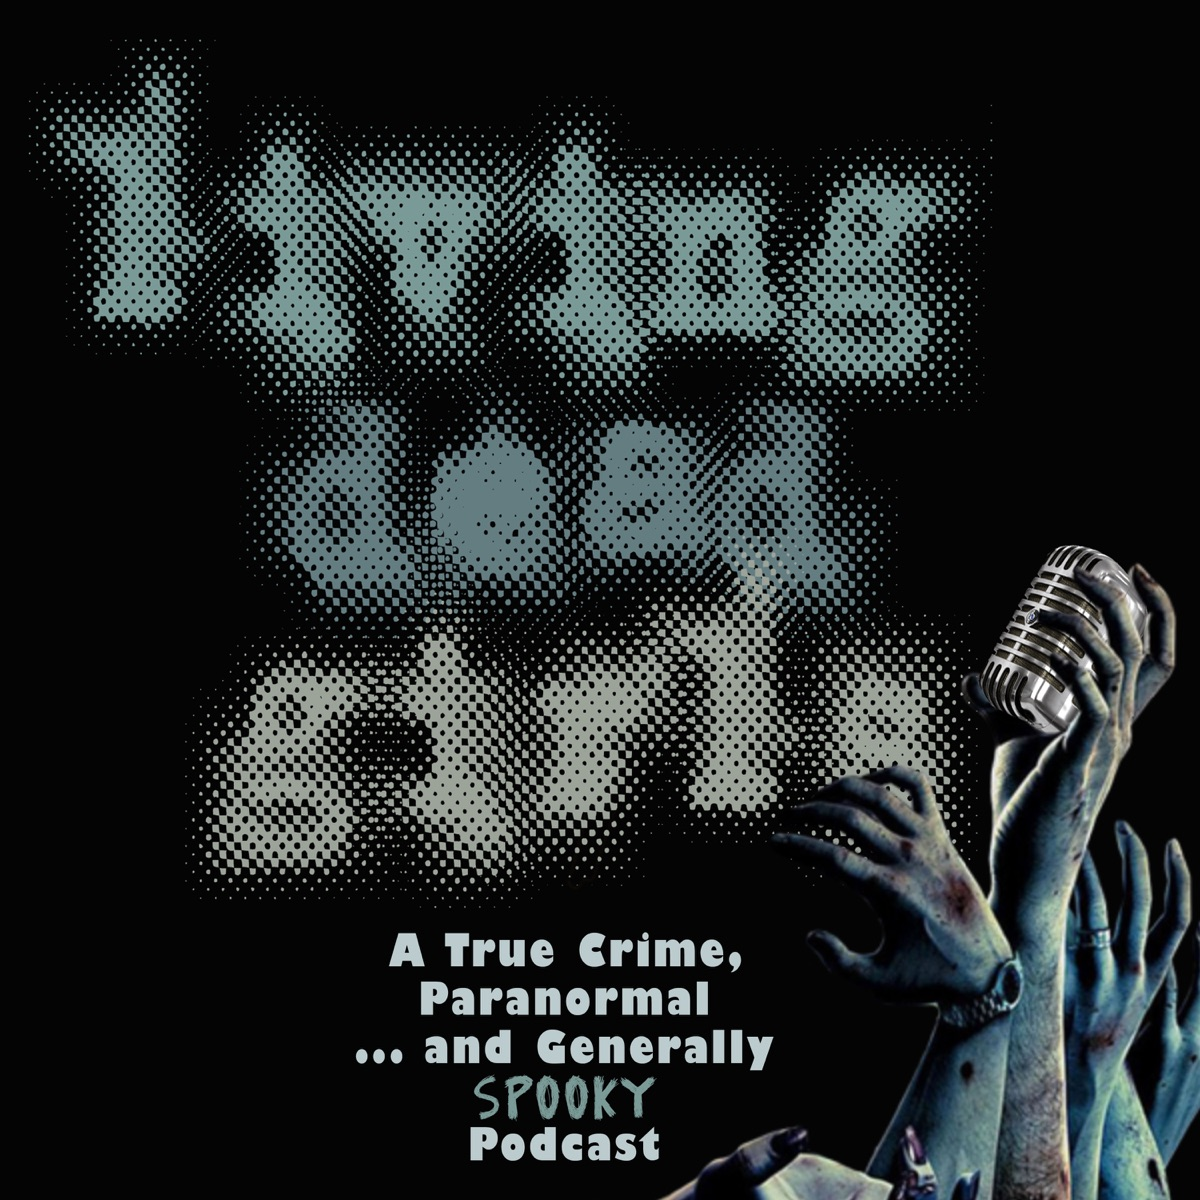 Living Dead Girls A True Crime Unsolved Mysteries Podcast Podcast Podtail Here are six mysteries that are downright creepy, and have yet to be solved. podtail